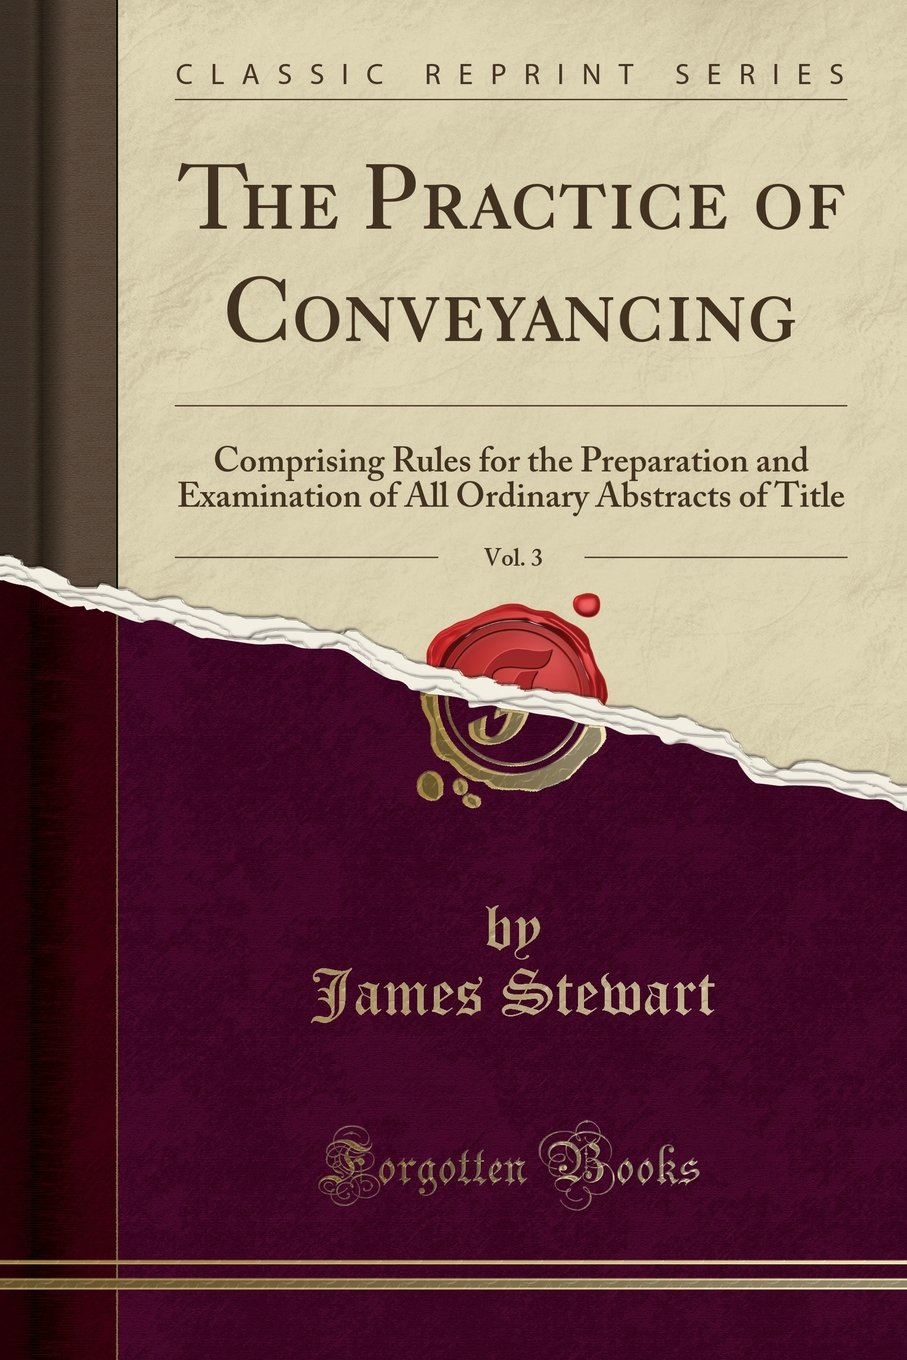 Read Online The Practice of Conveyancing, Vol. 3: Comprising Rules for the Preparation and Examination of All Ordinary Abstracts of Title (Classic Reprint) pdf